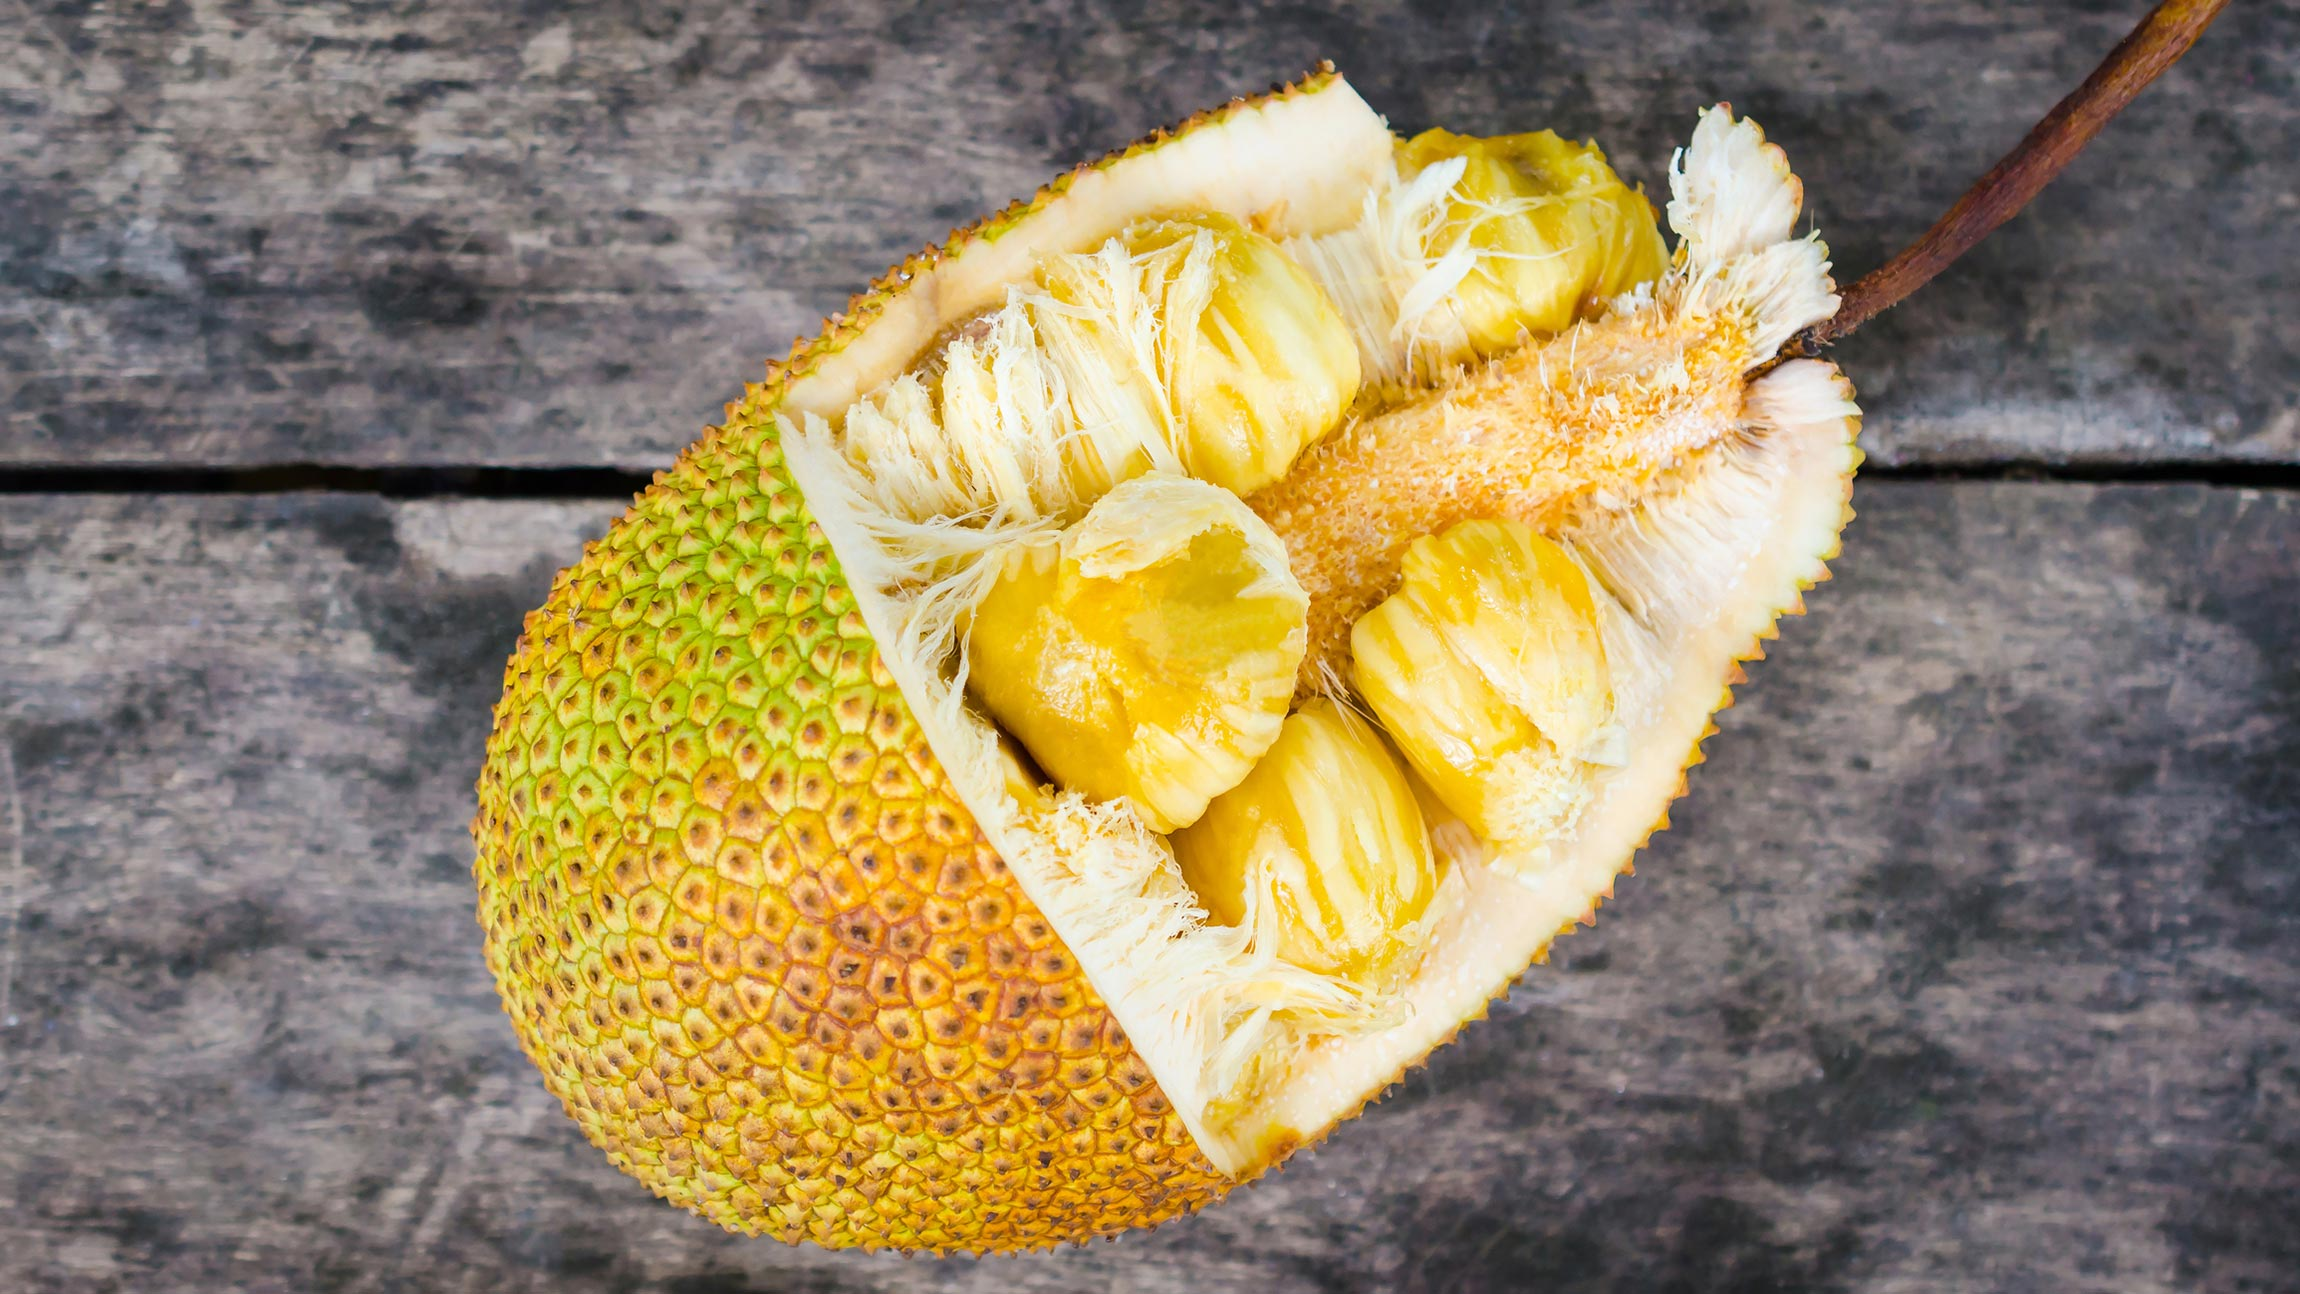 What is jackfruit? This is an image of what a jackfruit looks like on the inside.